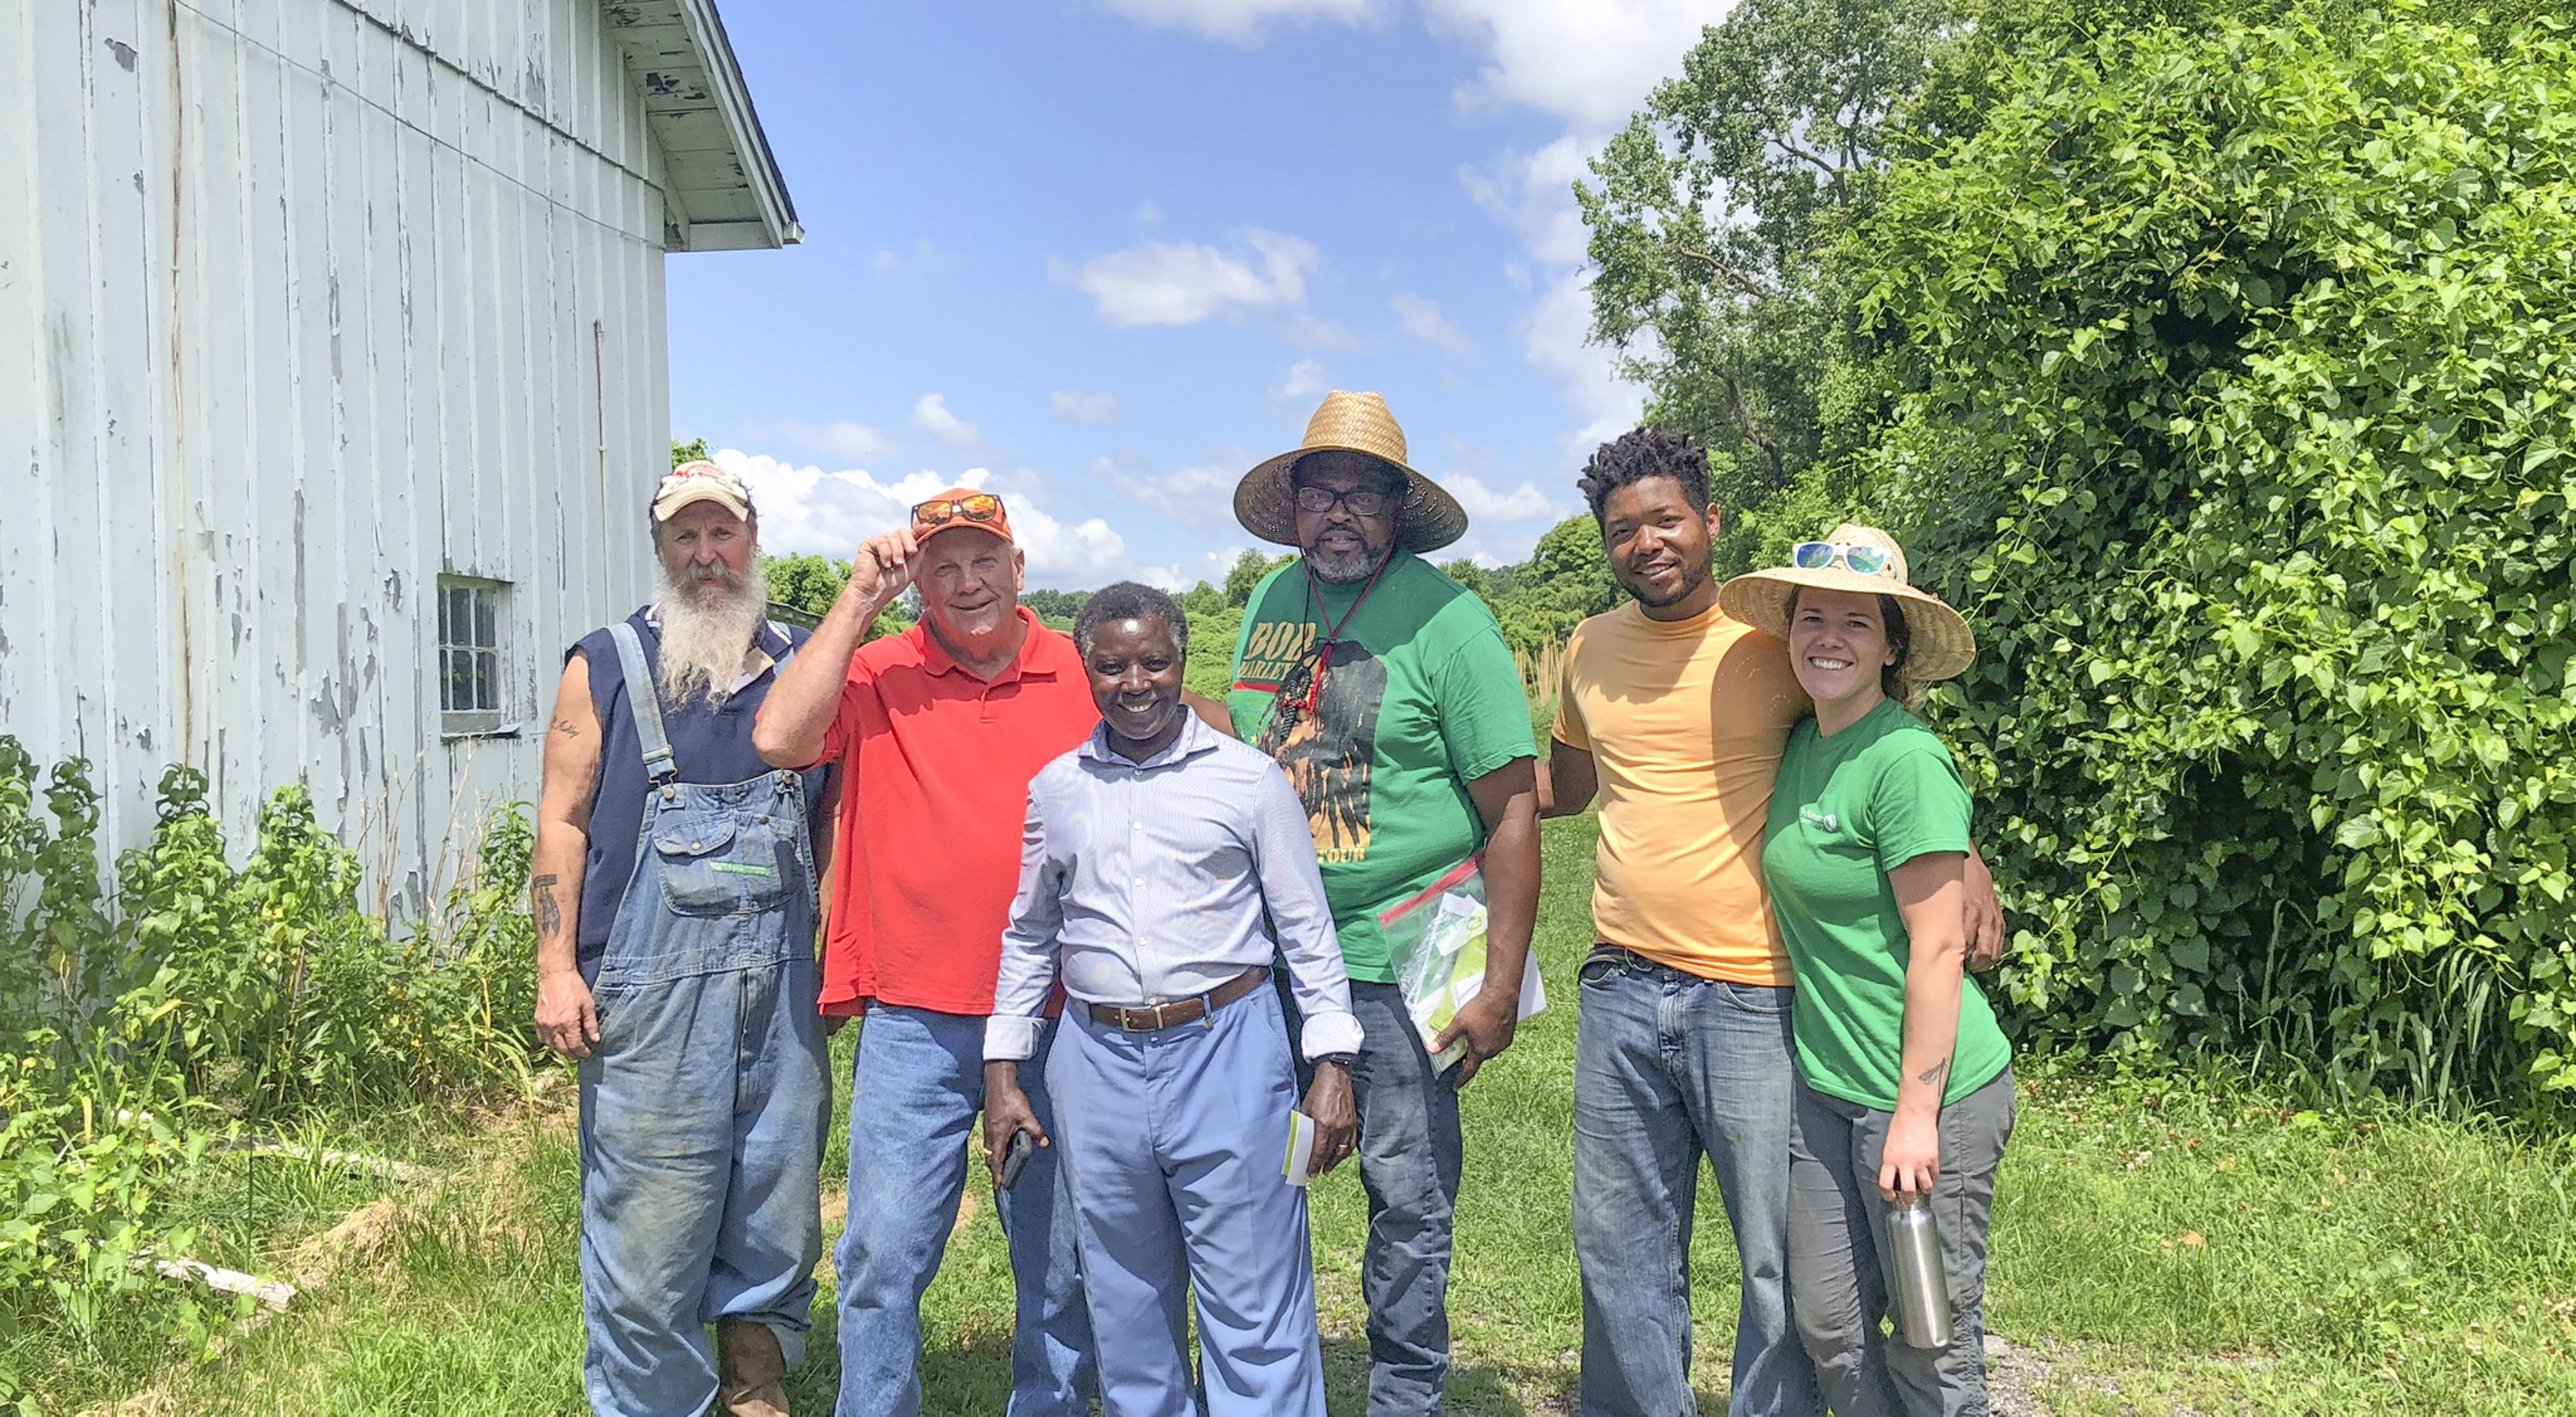 Pastor Bruce Carroll of Green The Church visits with Rebecca Weaver, Pastor Paul and Gibron Jones at Confluence Farms in St. Louis, MO.